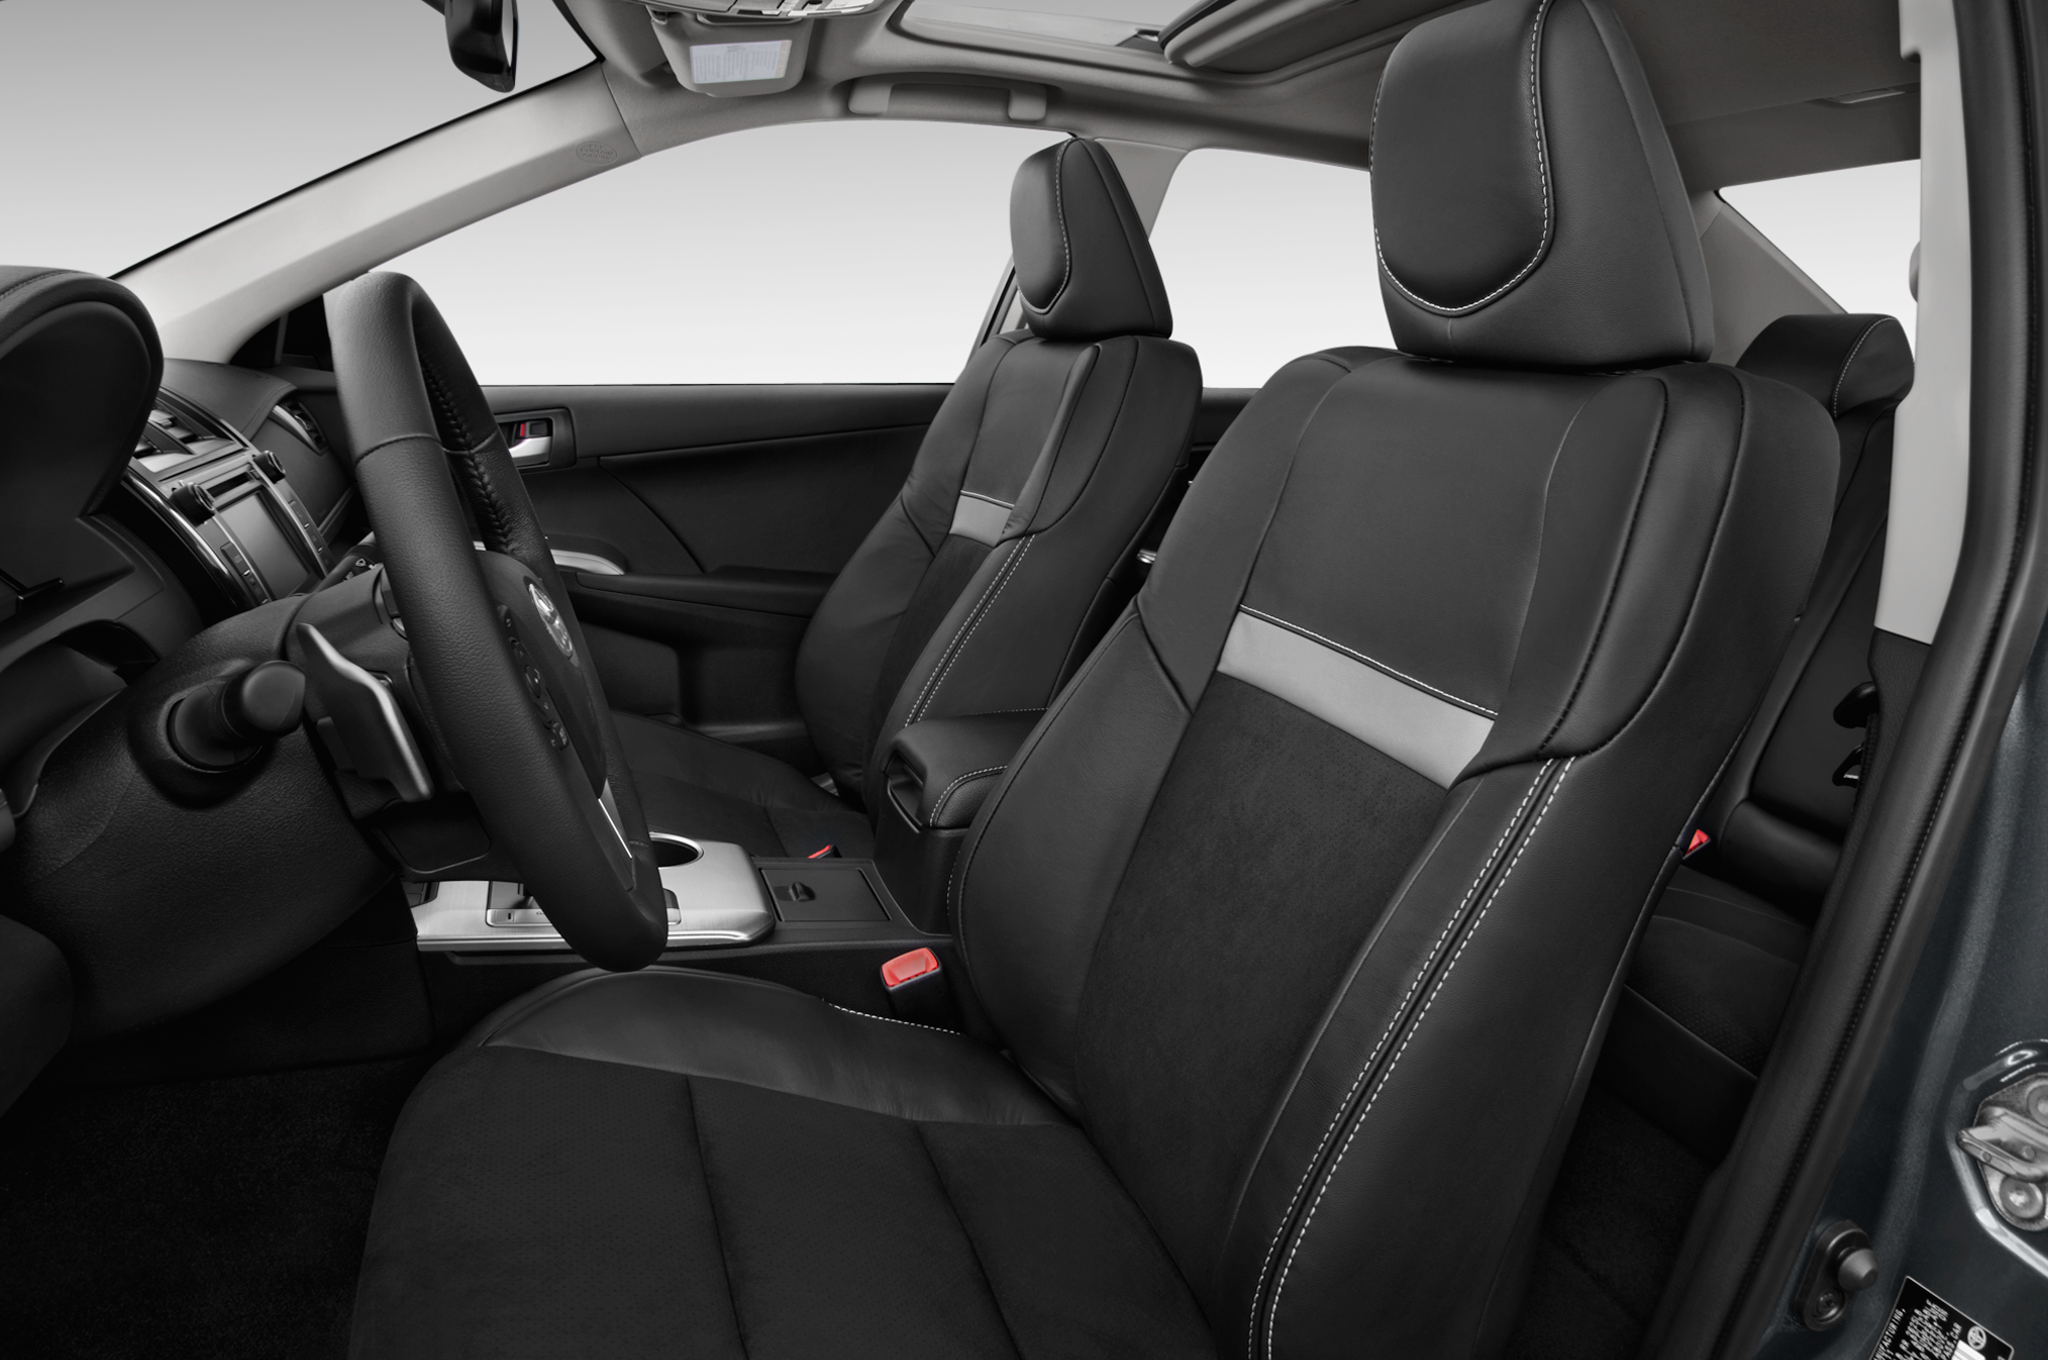 toyota camry leather seat replacement velcromag. Black Bedroom Furniture Sets. Home Design Ideas